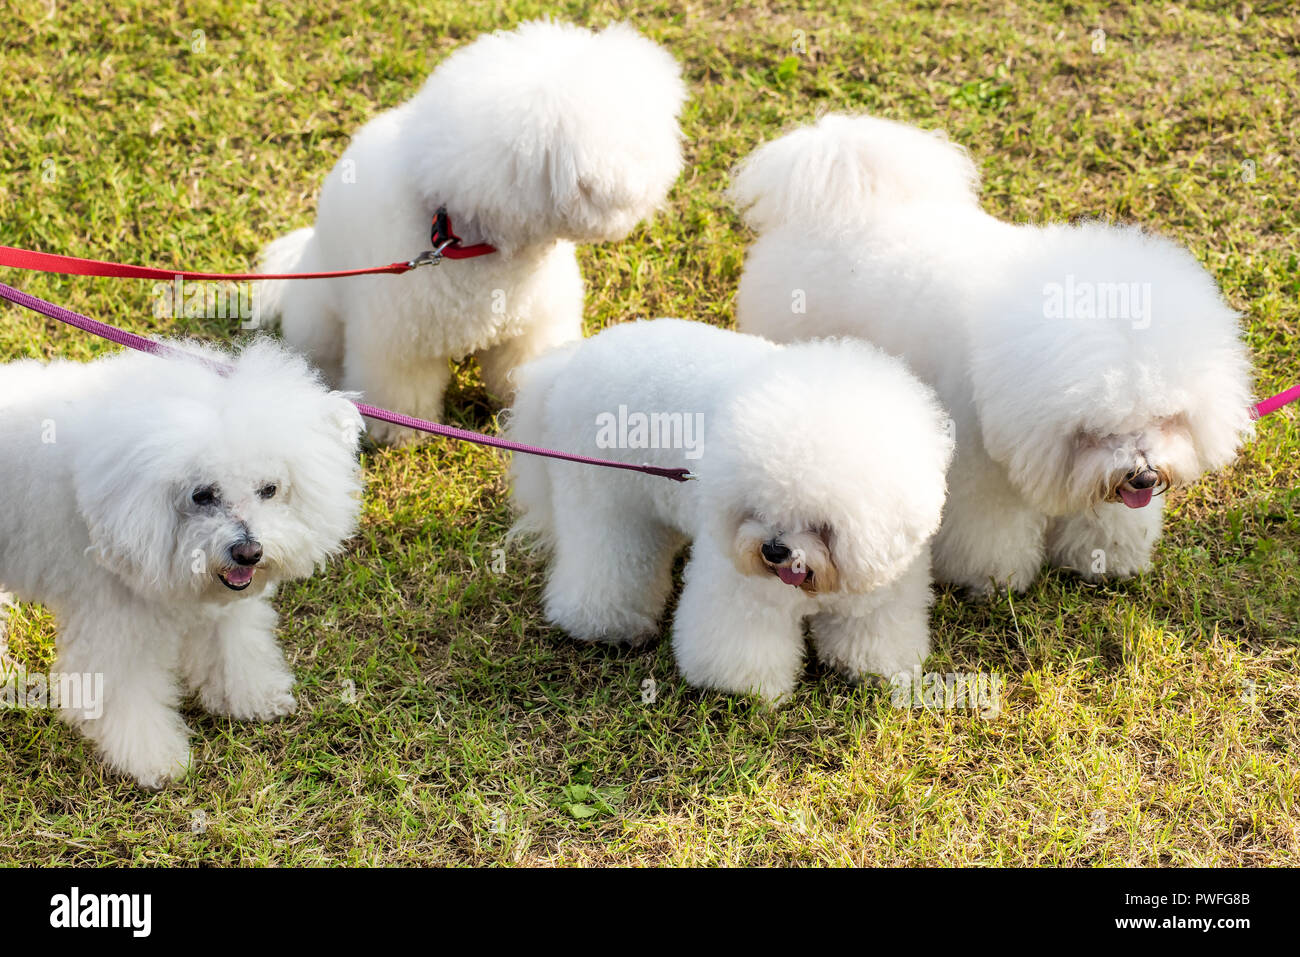 Four white dogs Bichon Frise is being walked in the park, viewed from high angle in close-up on green lawn, held by red leashes - Stock Image